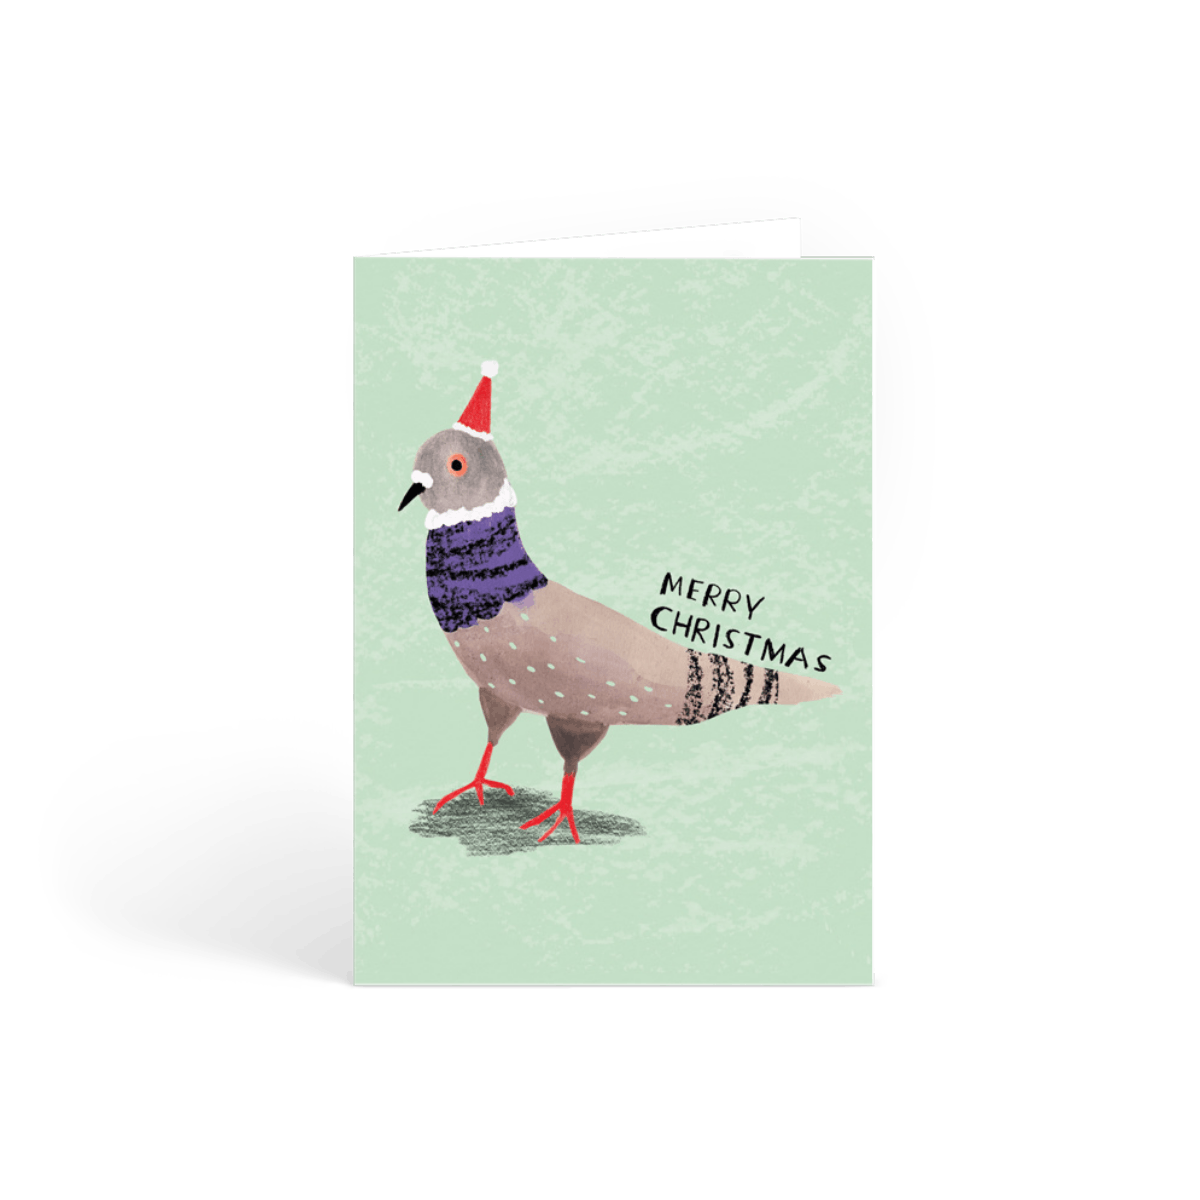 Https%3a%2f%2fwww.papier.com%2fproduct image%2f24342%2f2%2fchristmas pigeon 6093 avant 1498139934.png?ixlib=rb 1.1